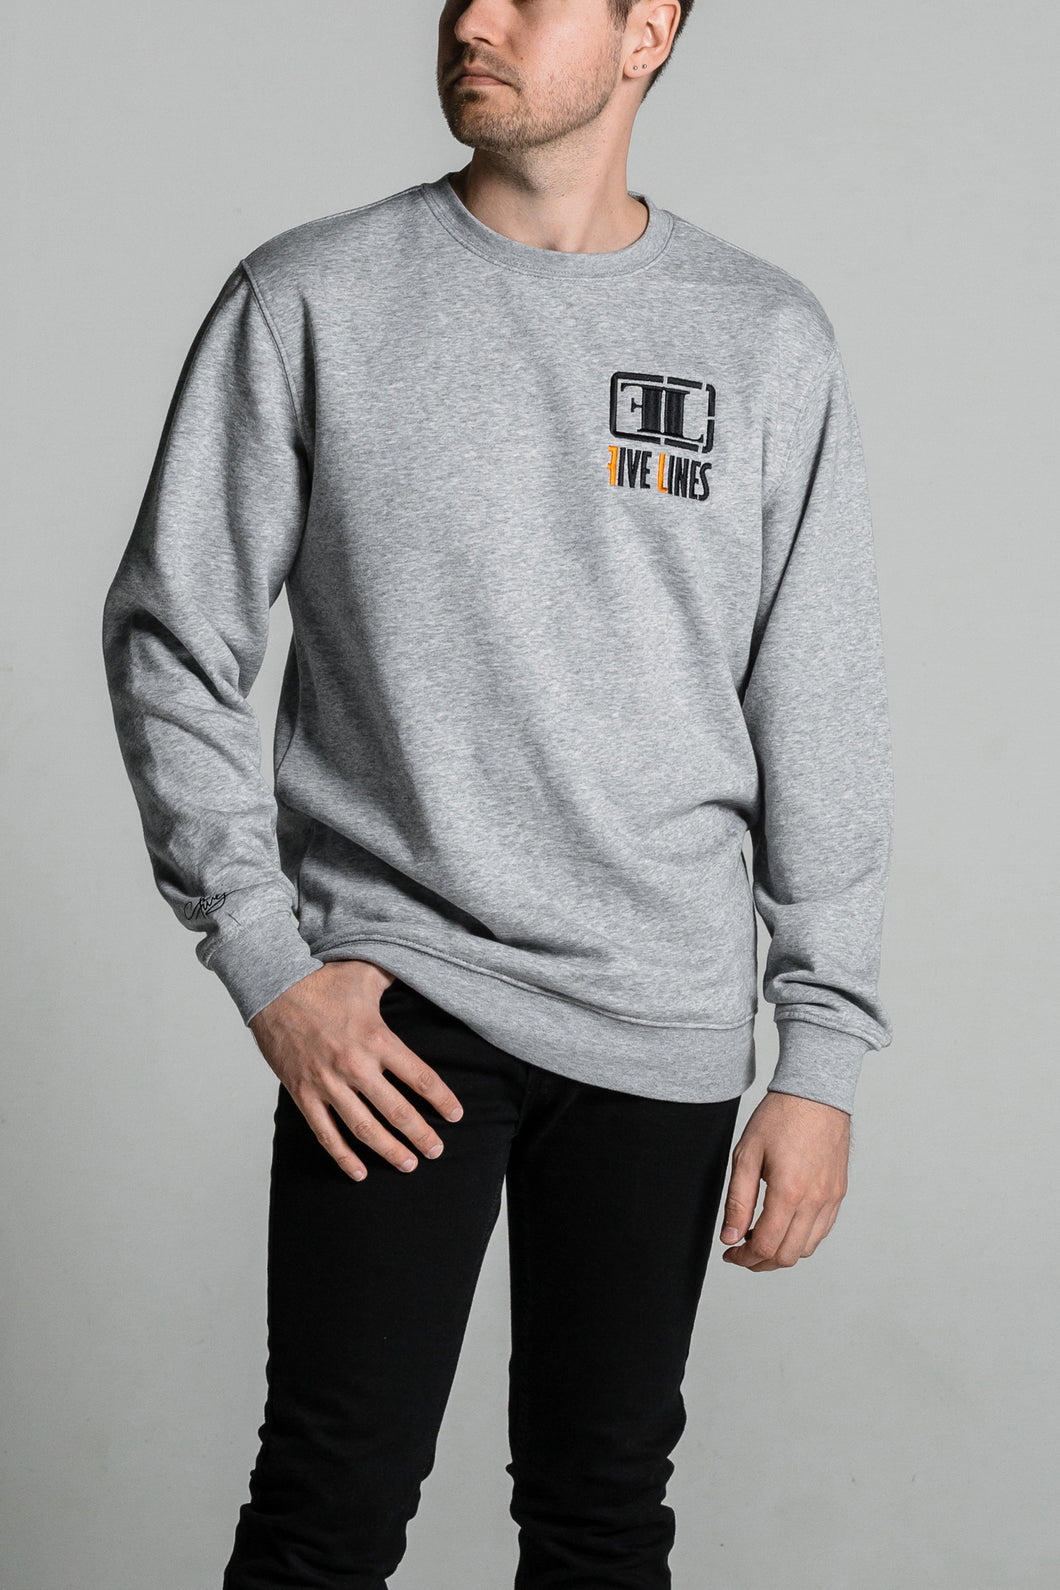 Five Lines 'Filthy Clean' Crew - Grey (Regular Fit)